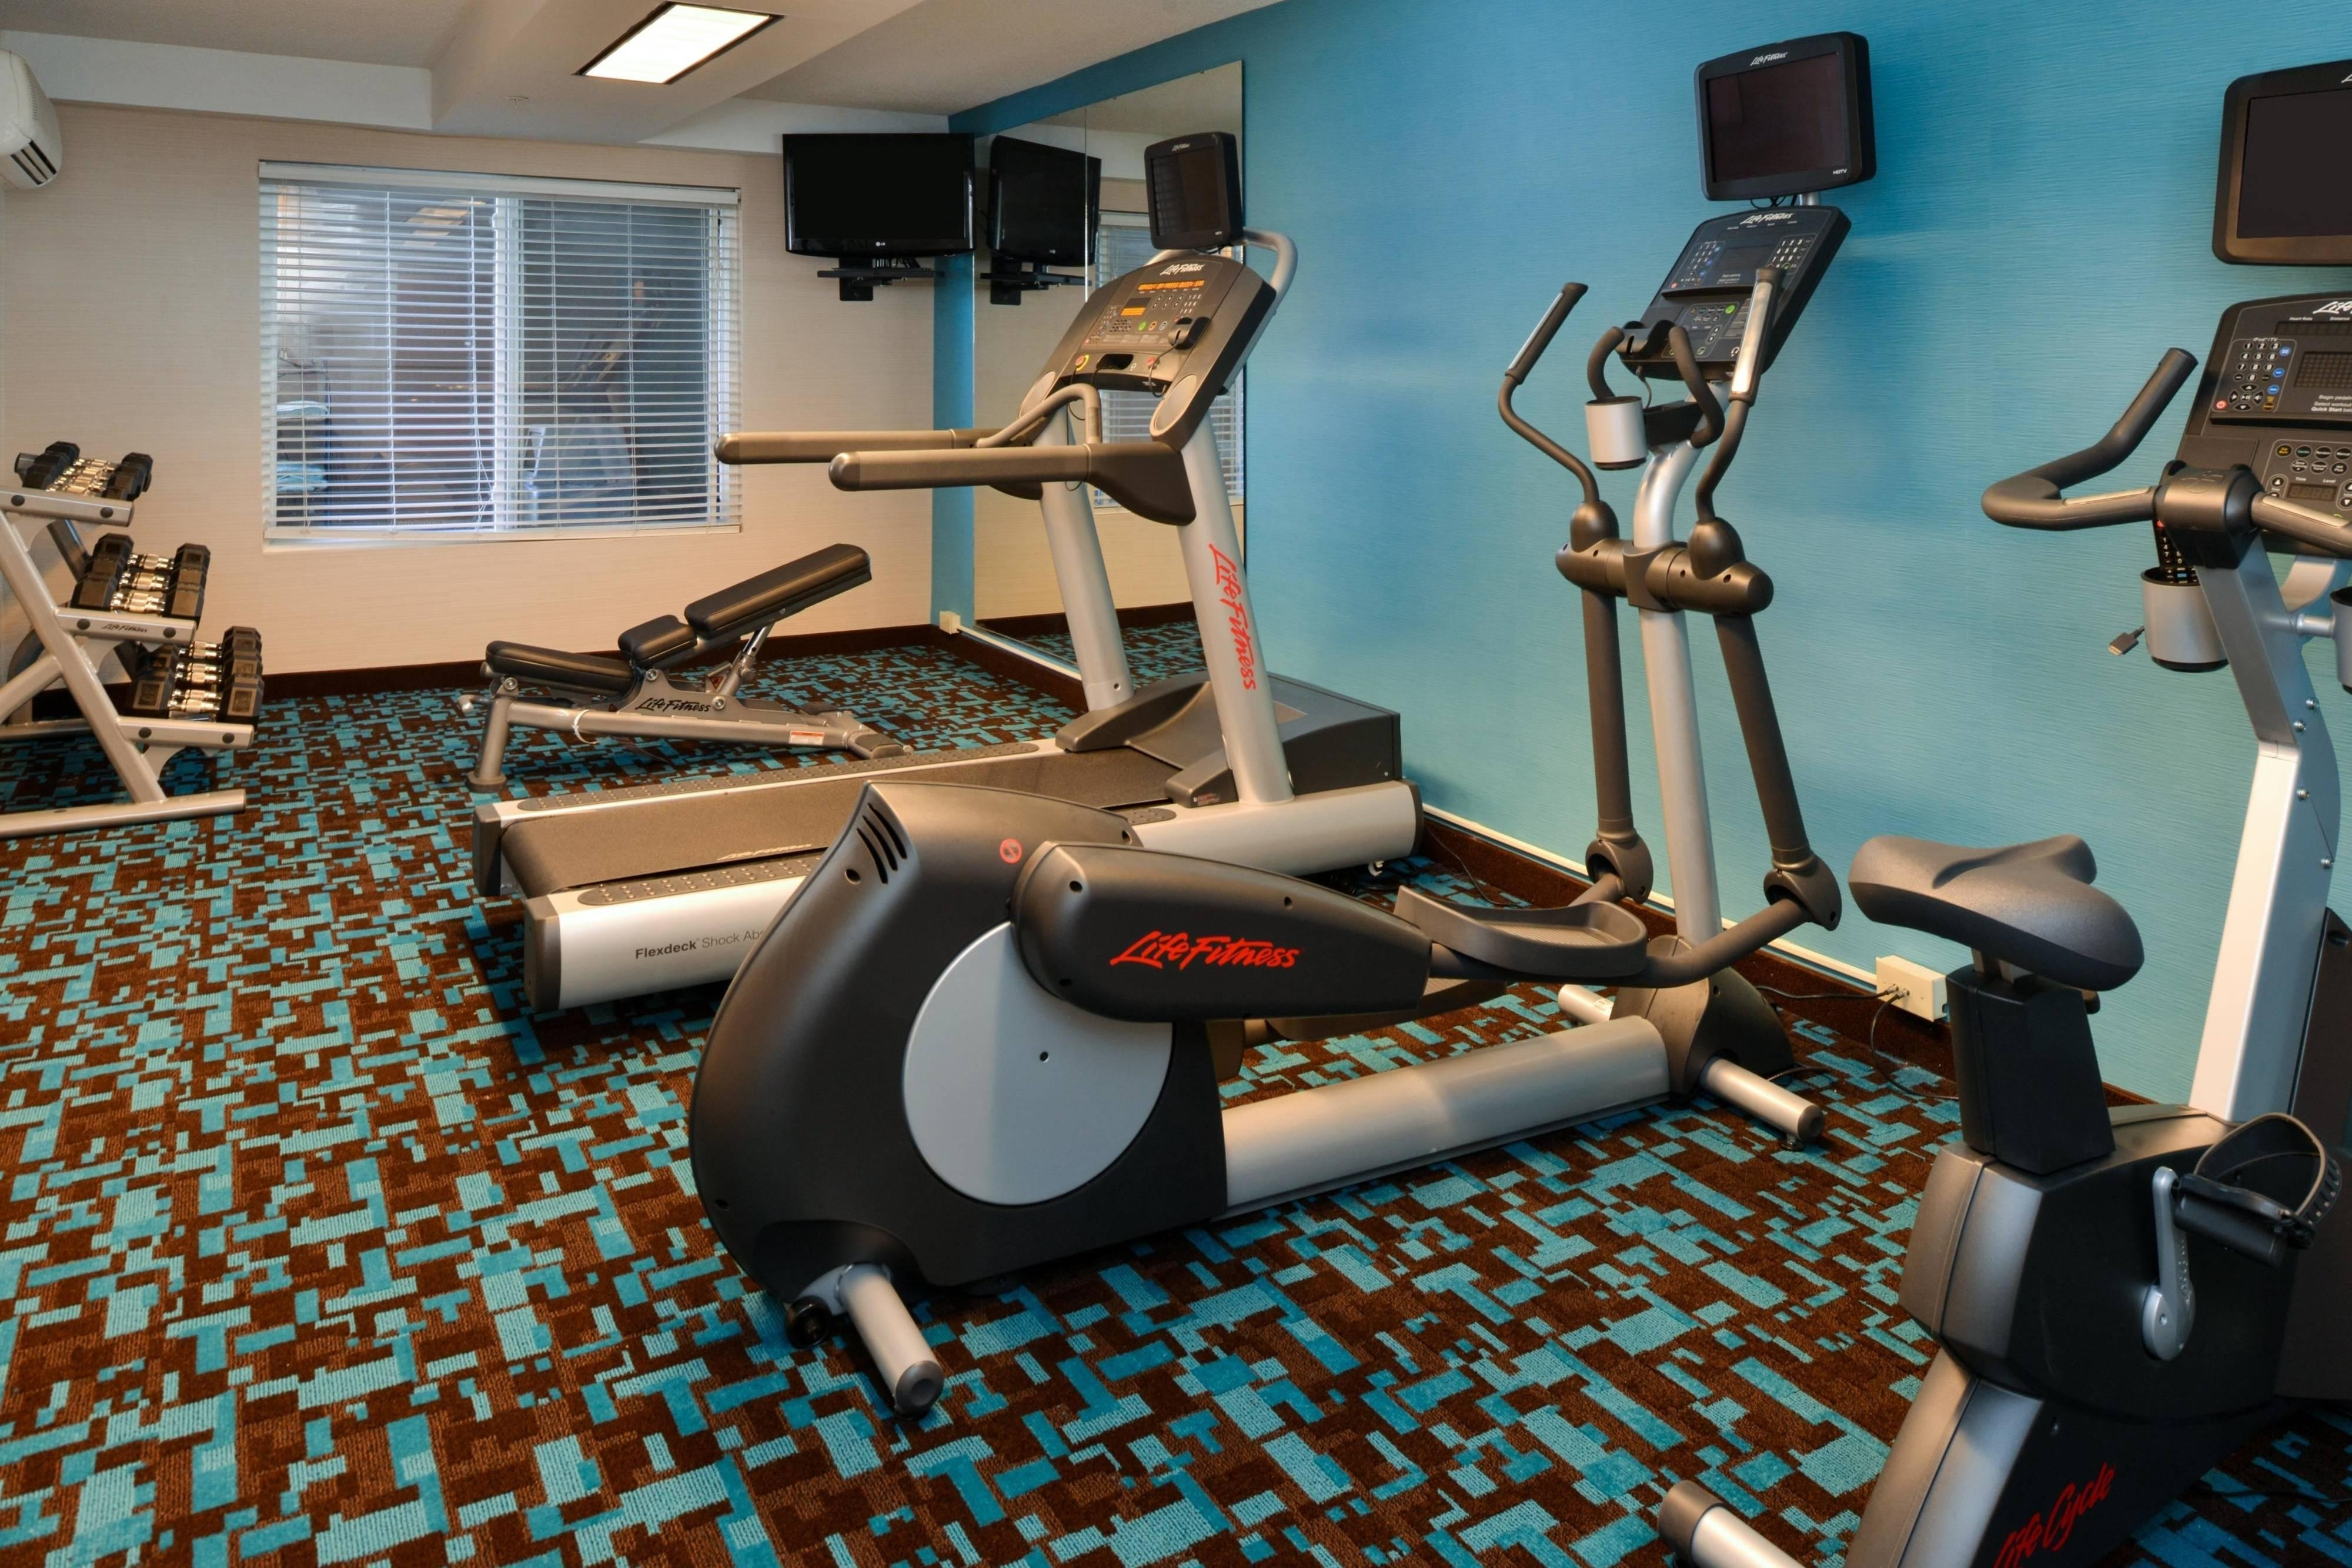 Fairfield Inn & Suites Georgetown Fitness Center